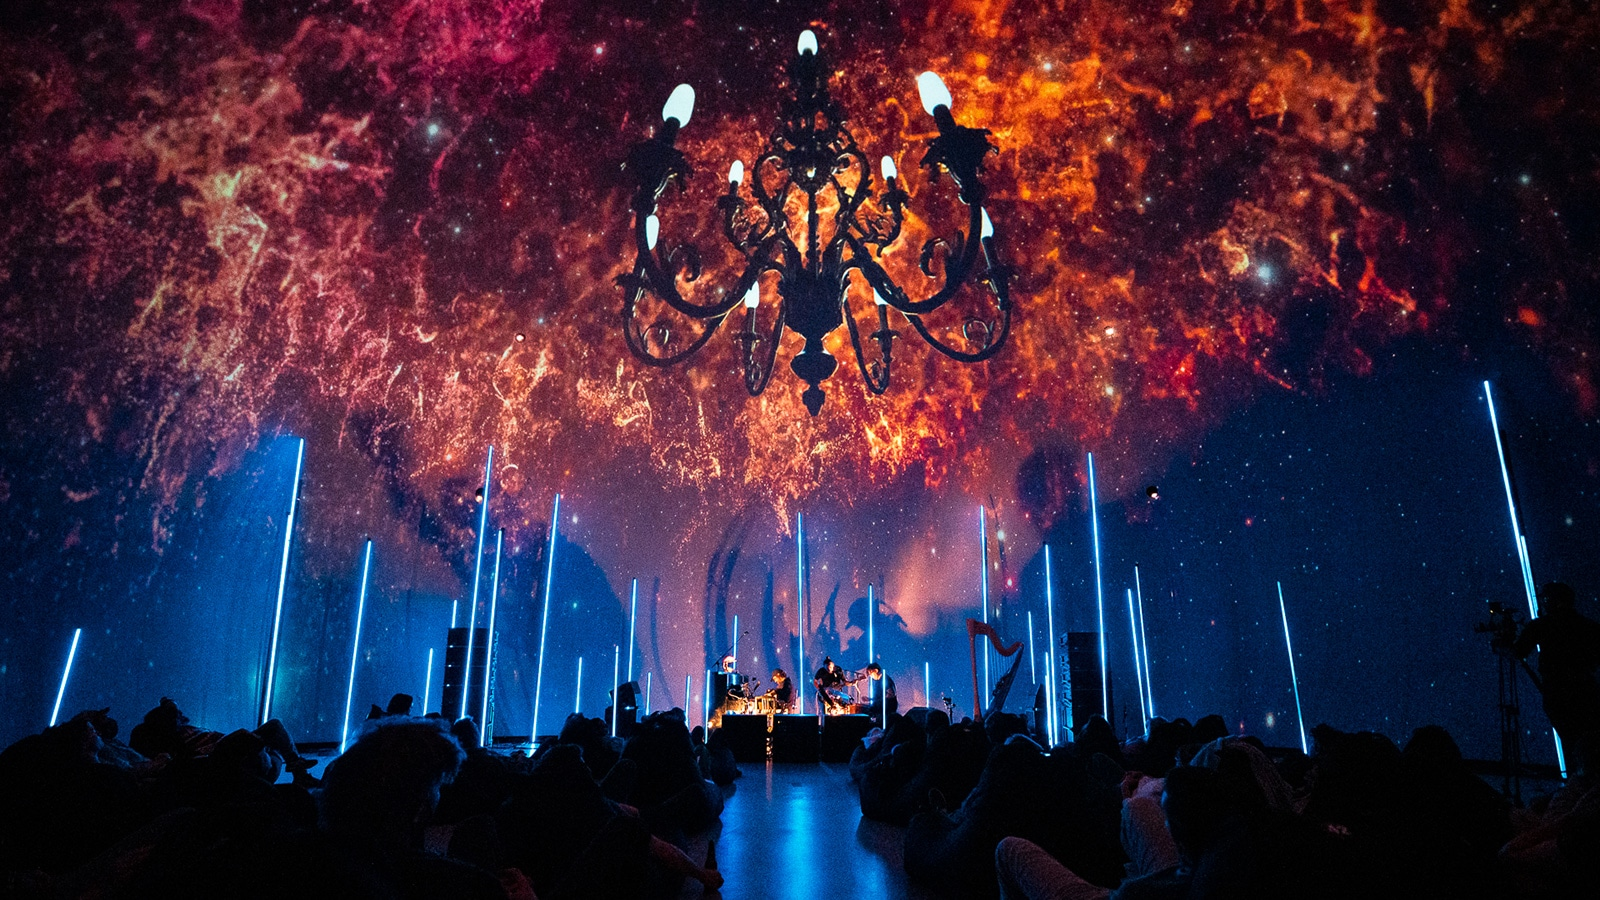 Spacemap Go Proves a Highlight of MUTEK 2020